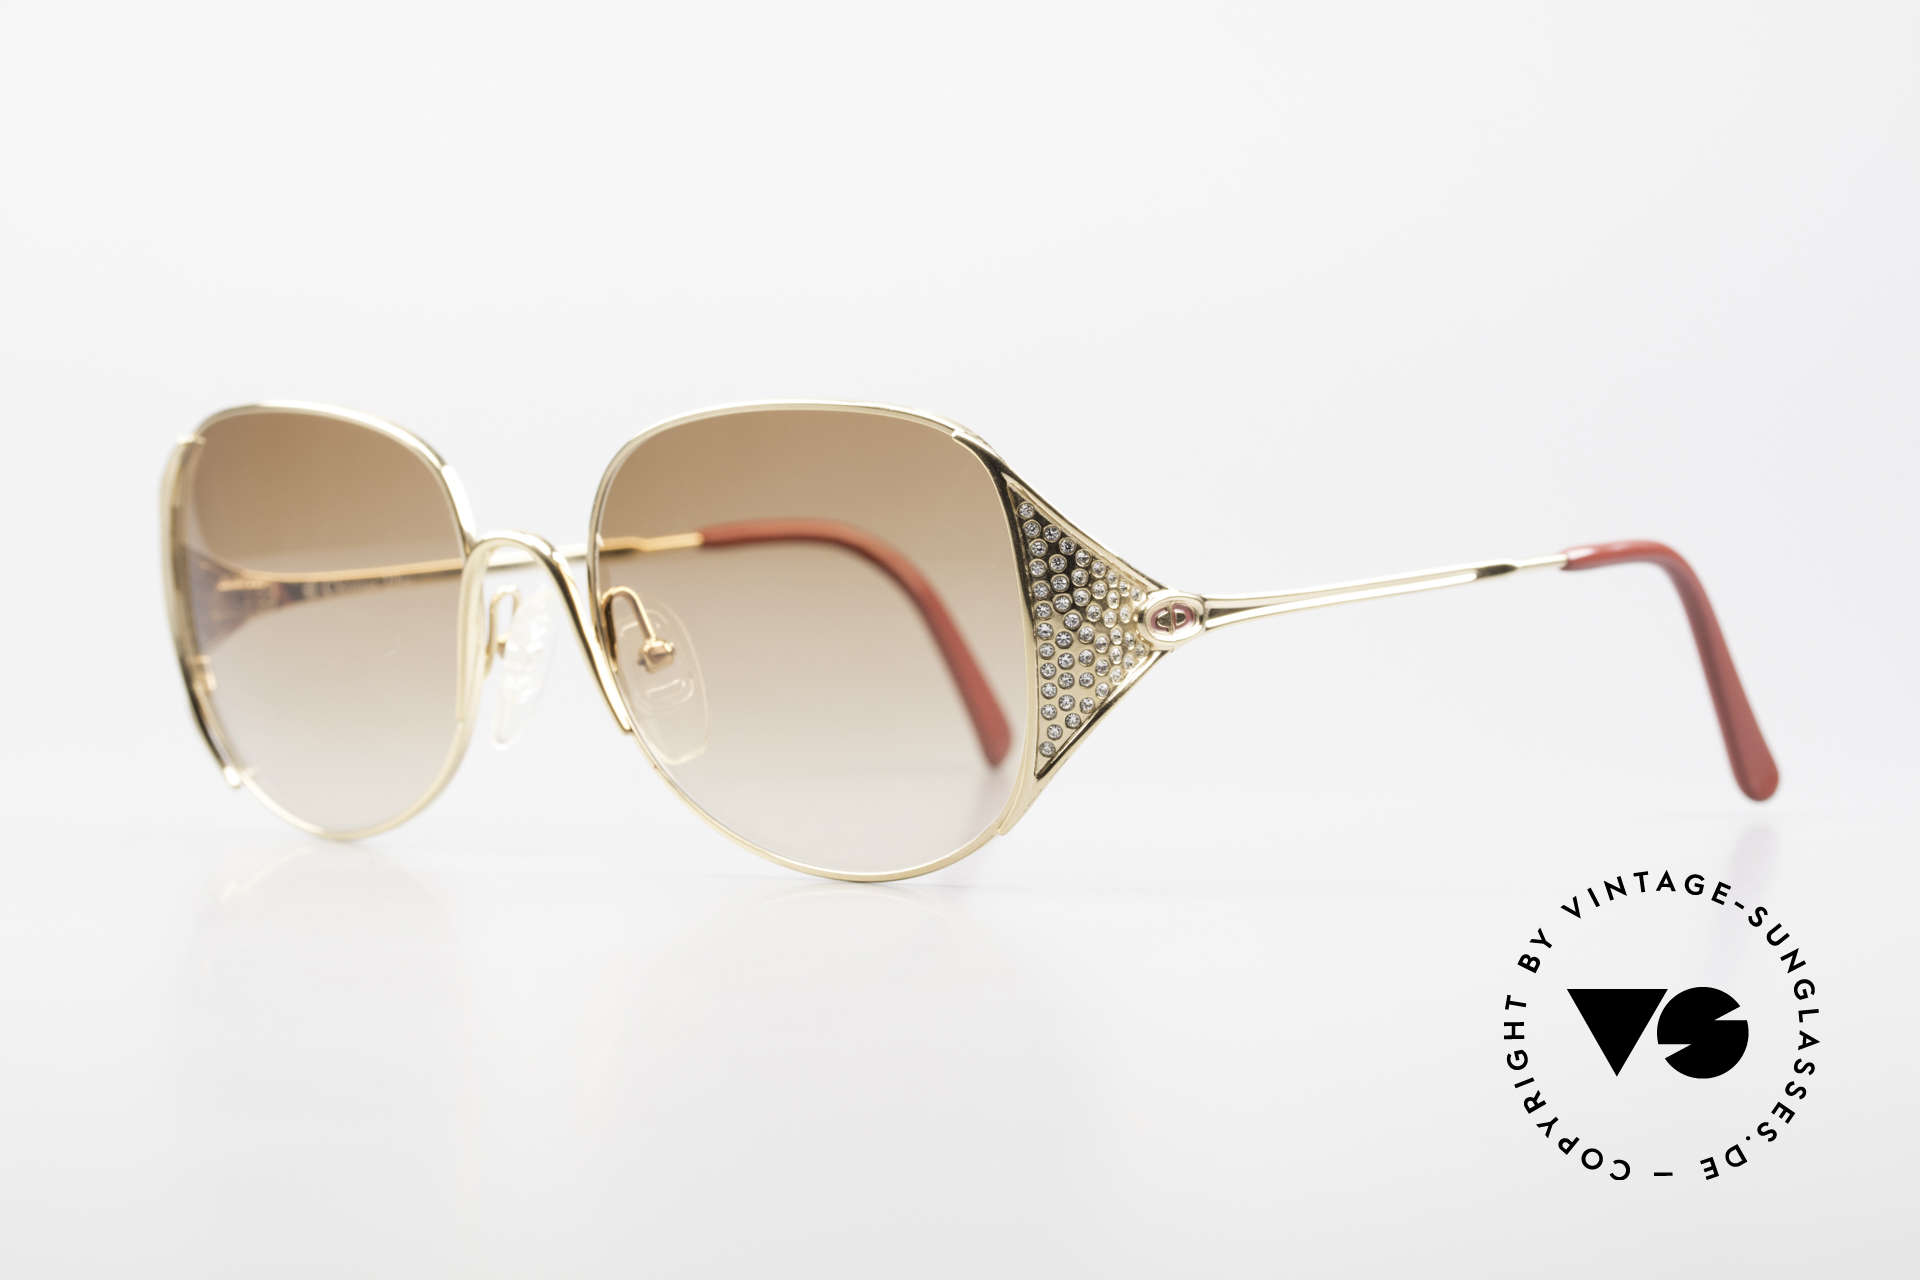 Christian Dior 2362 Ladies Sunglasses Rhinestone, finest quality and craftsmanship by Christian DIOR, Made for Women